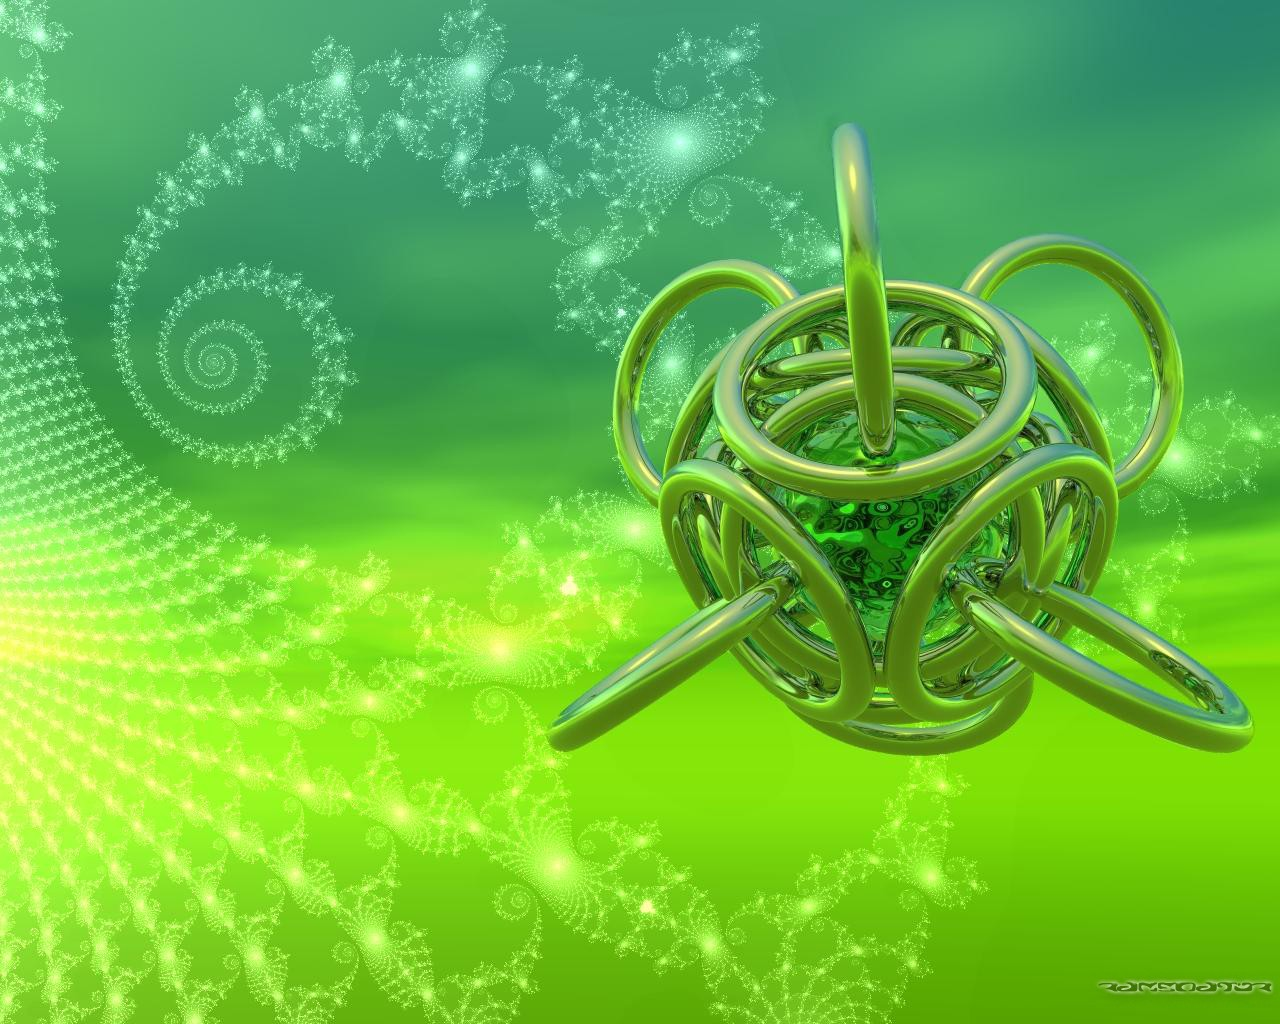 Download Wallpaper Keren - Abstract St Patrick's Day Background , HD Wallpaper & Backgrounds